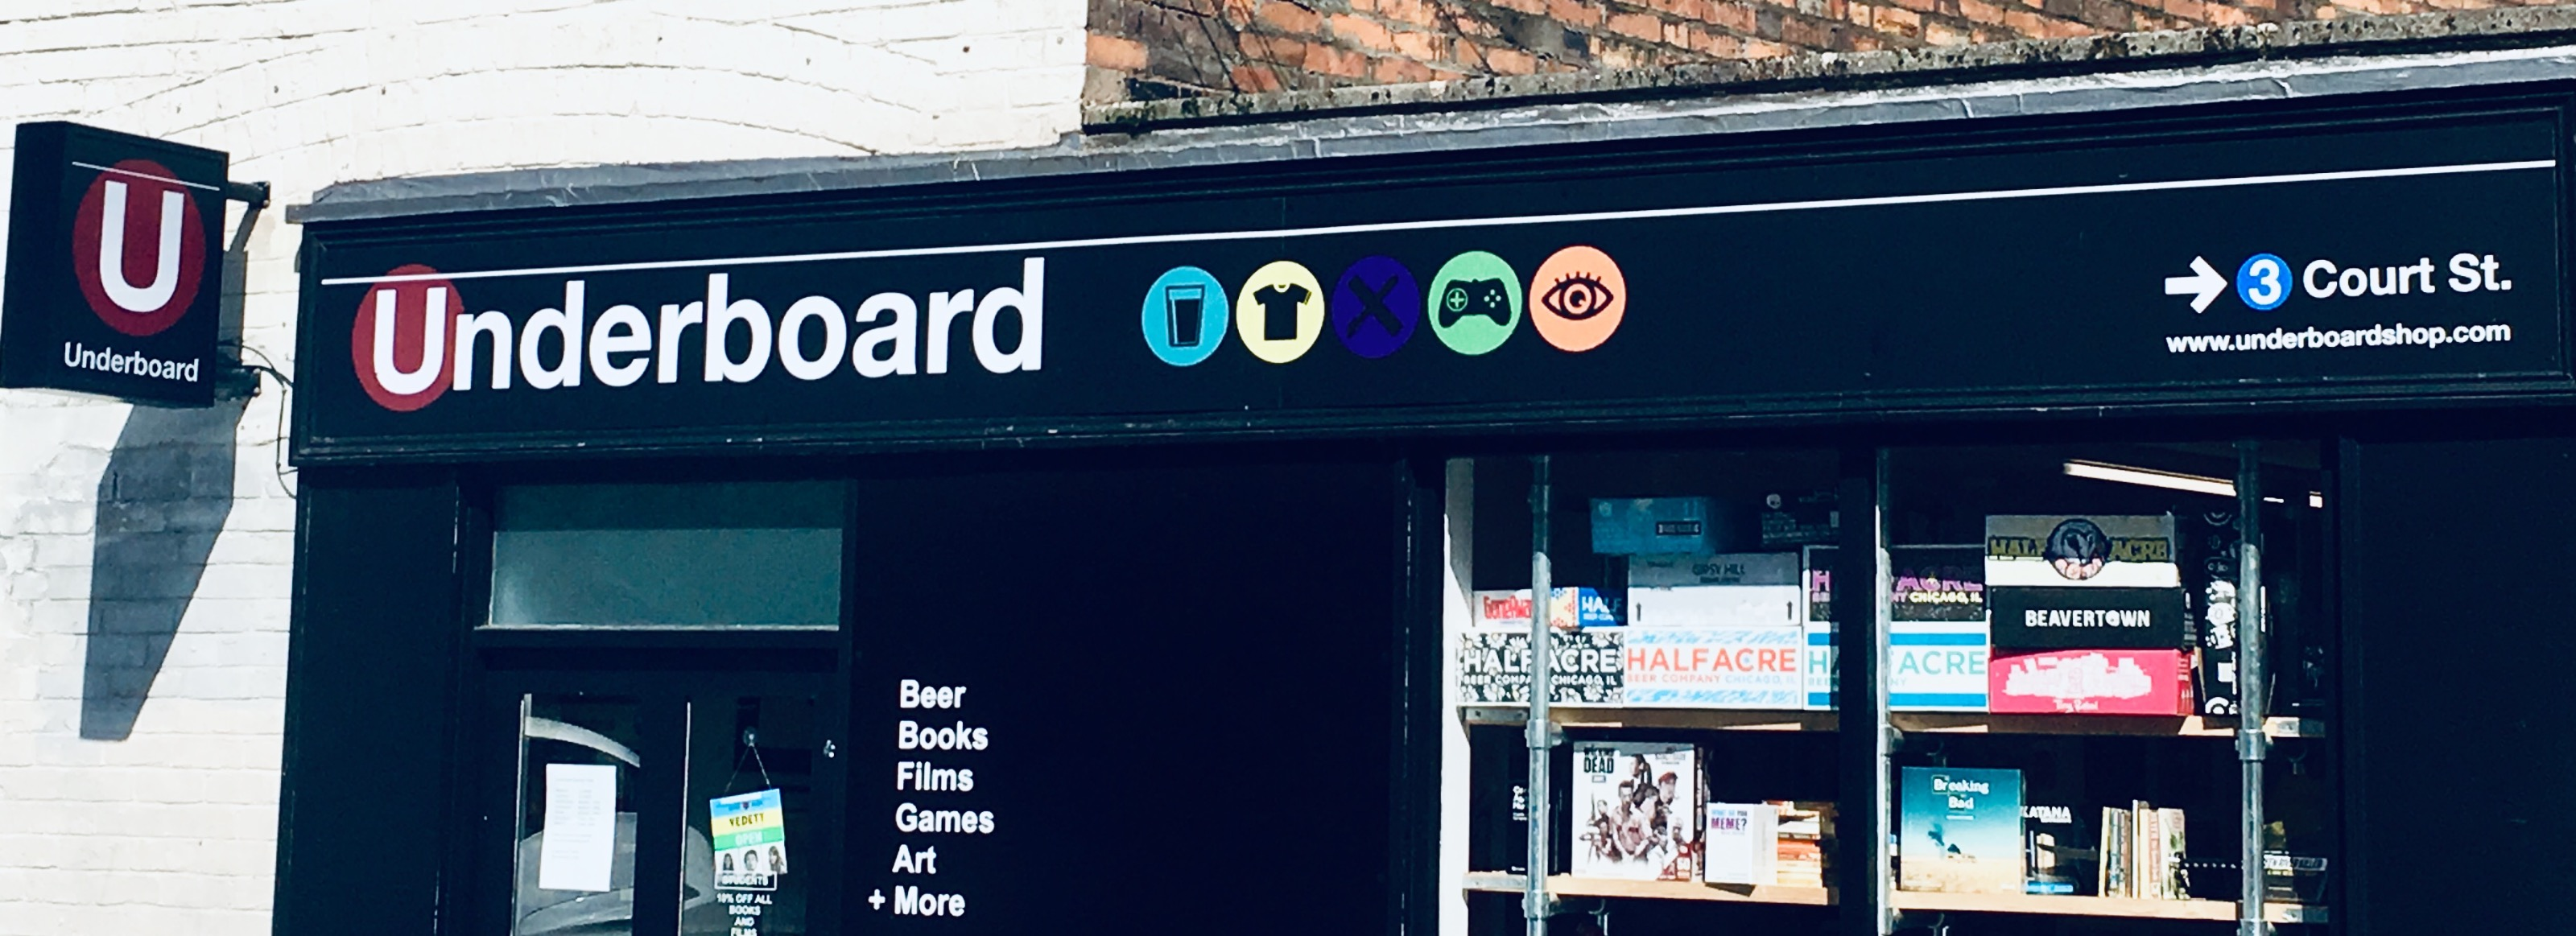 Image of Underboard shop front